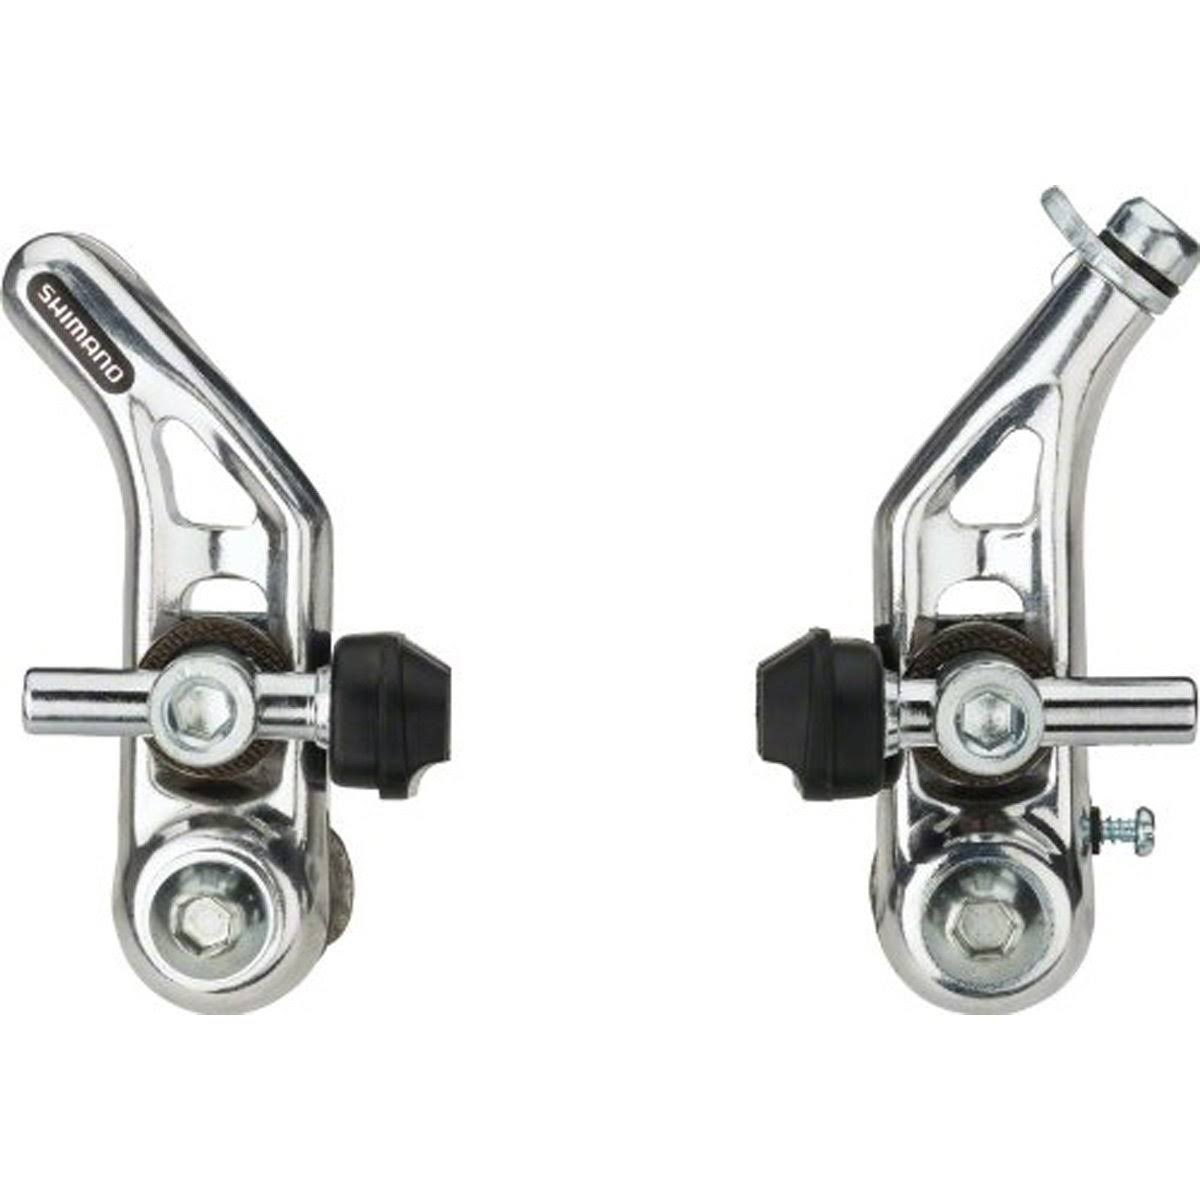 Shimano Altus CT91 Rear Cantilever Brake with Link Wire